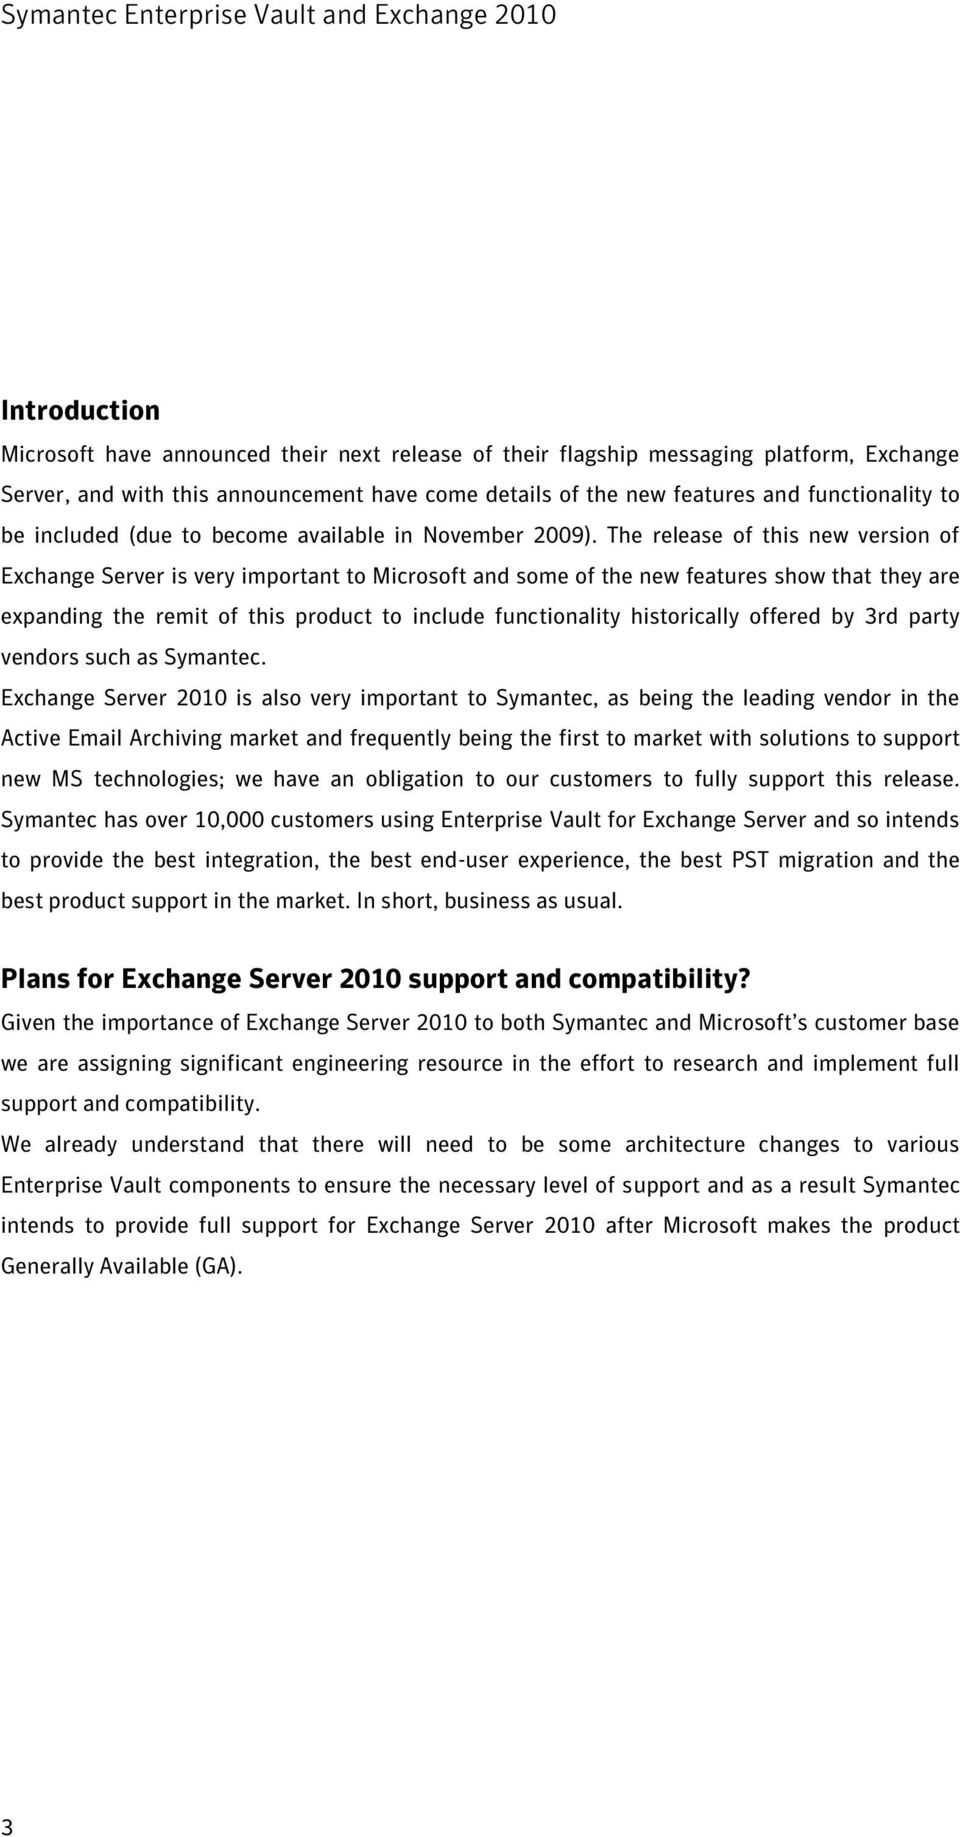 The release of this new version of Exchange Server is very important to Microsoft and some of the new features show that they are expanding the remit of this product to include functionality